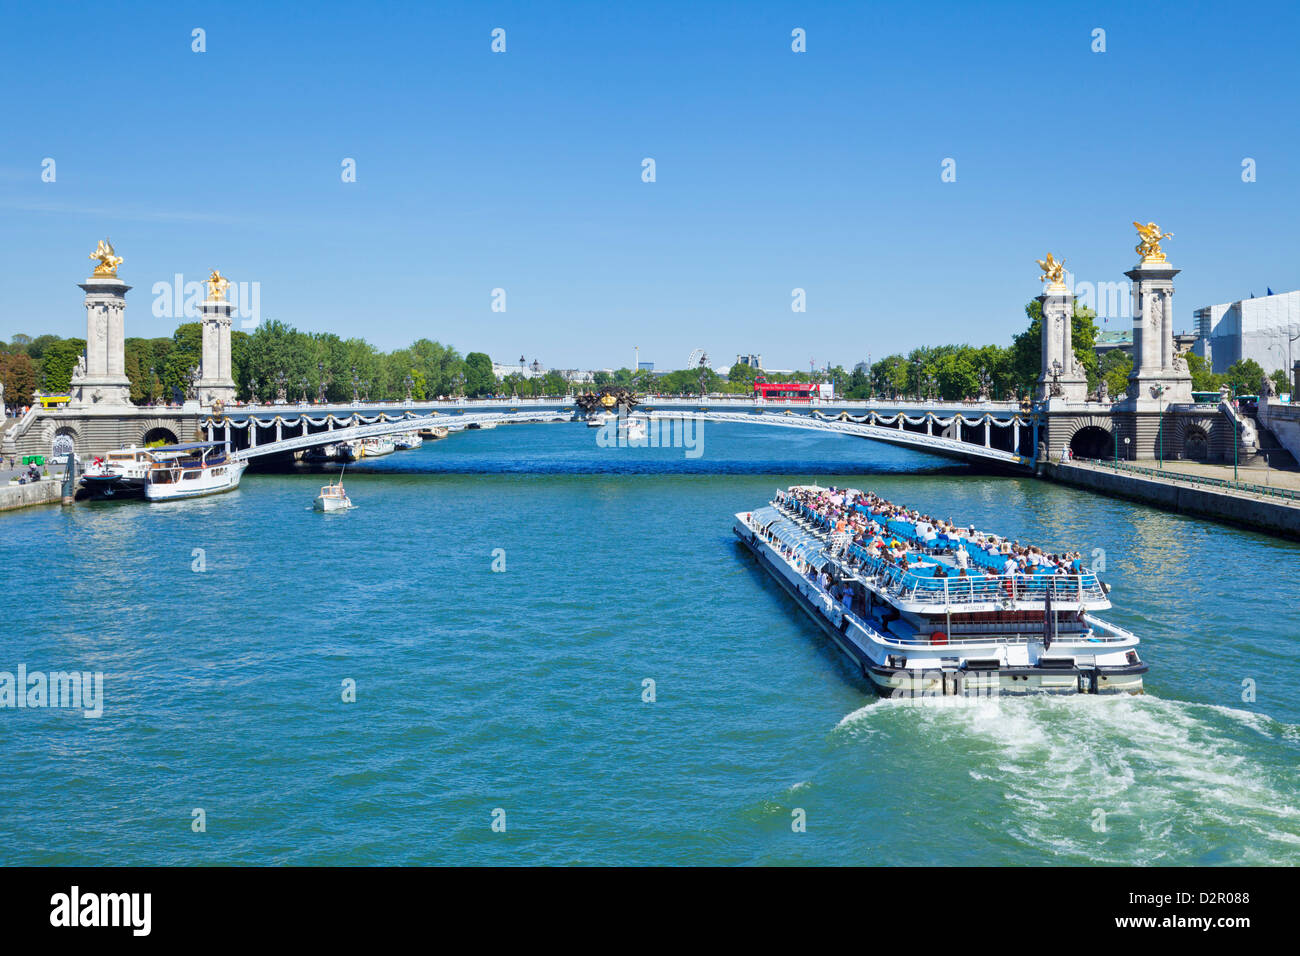 River Seine Cruise boat, Bateaux Mouches and the Pont Alexandre III Bridge, Paris, France, Europe - Stock Image